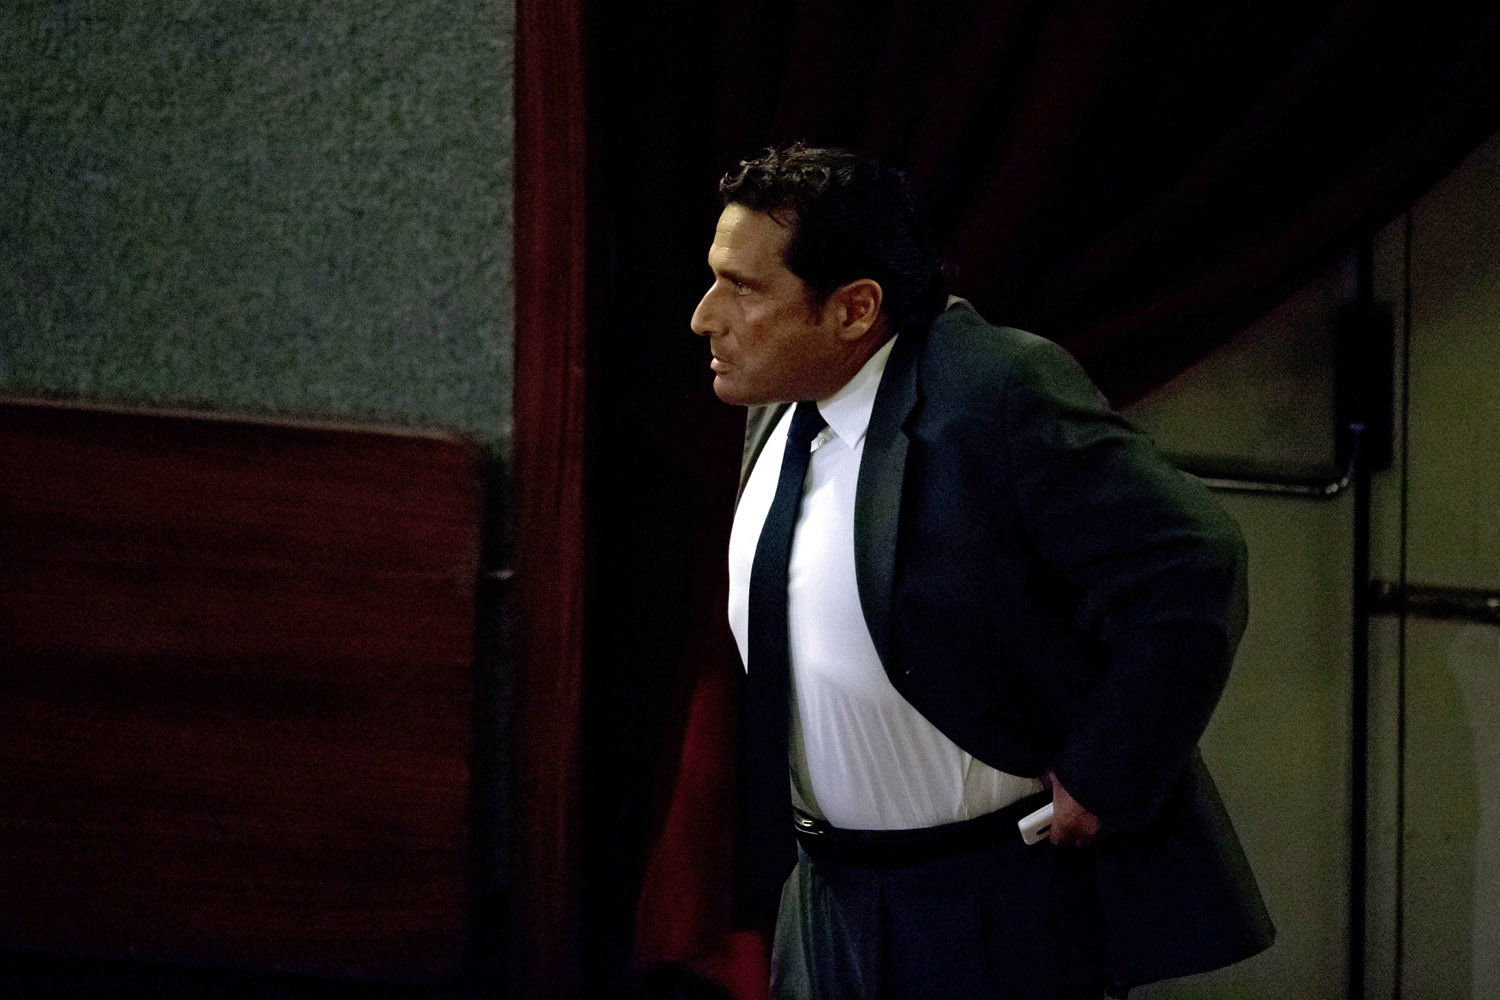 Sept. 23, 2013. Captain Francesco Schettino adjusts his trousers as he walks in the court room of the converted Teatro Moderno theater for his trial, in Grosseto, Italy.